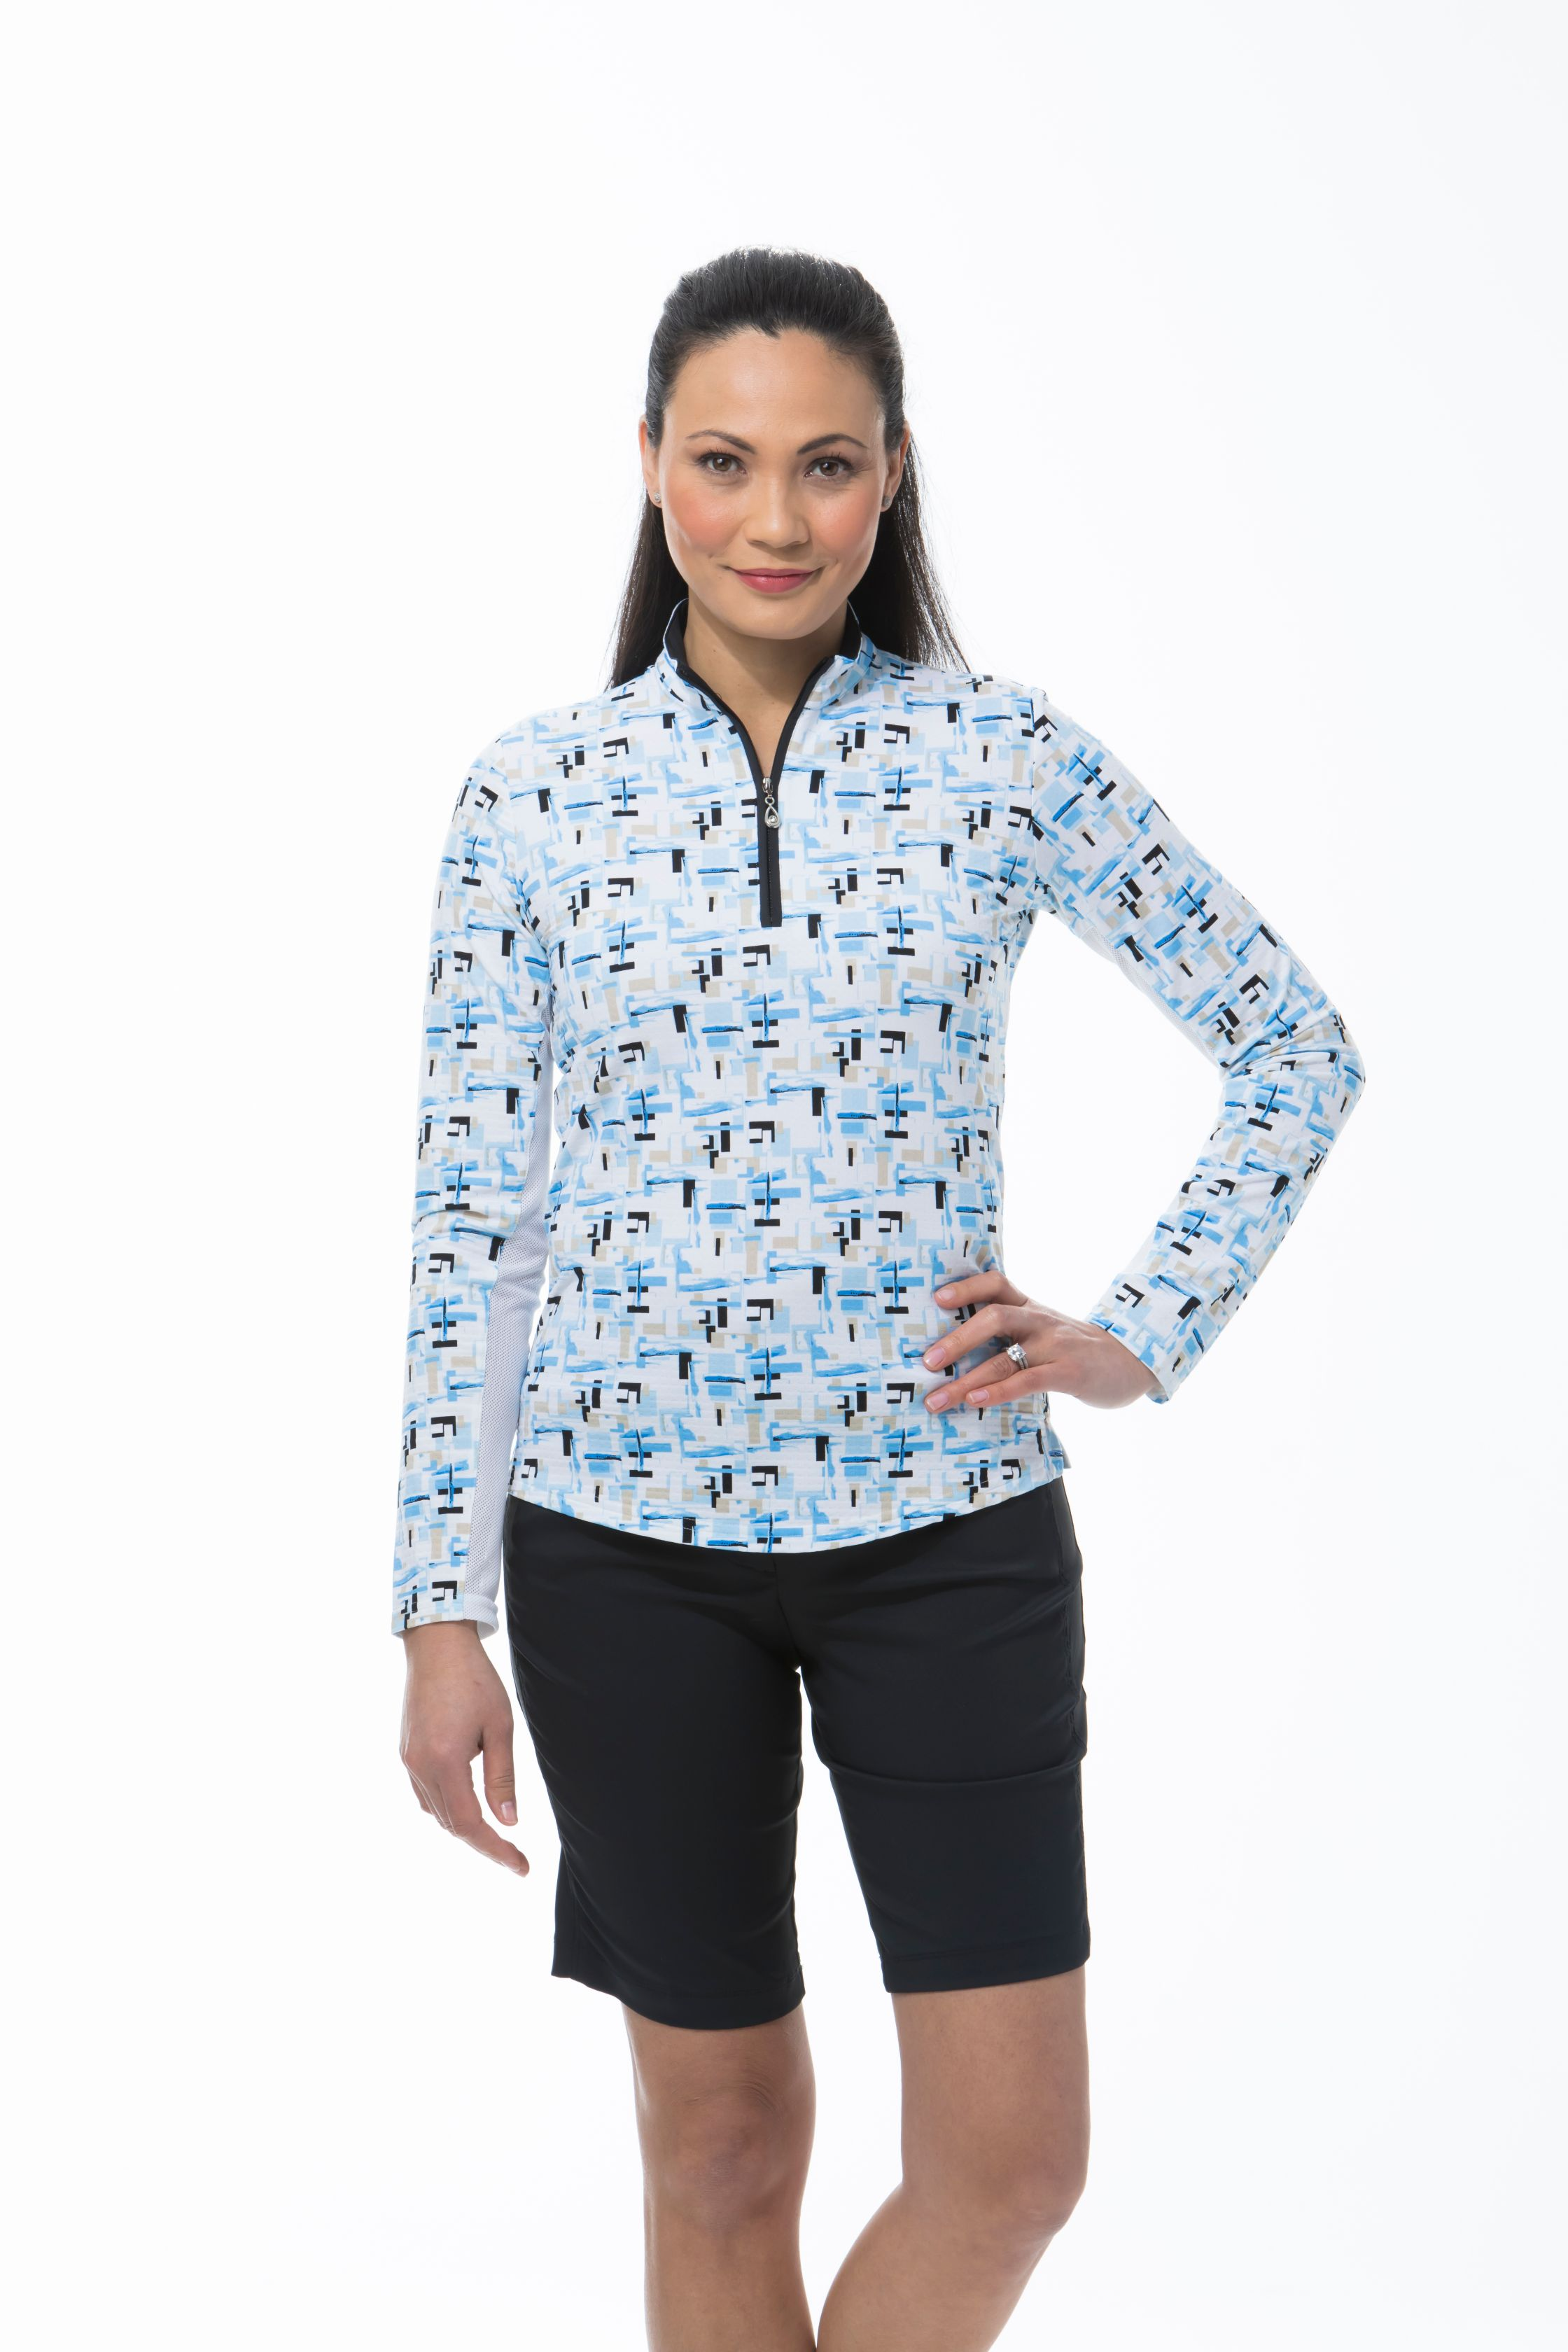 900611 SOLTEKICE L/S PRINT MOCK. Riley. Blue